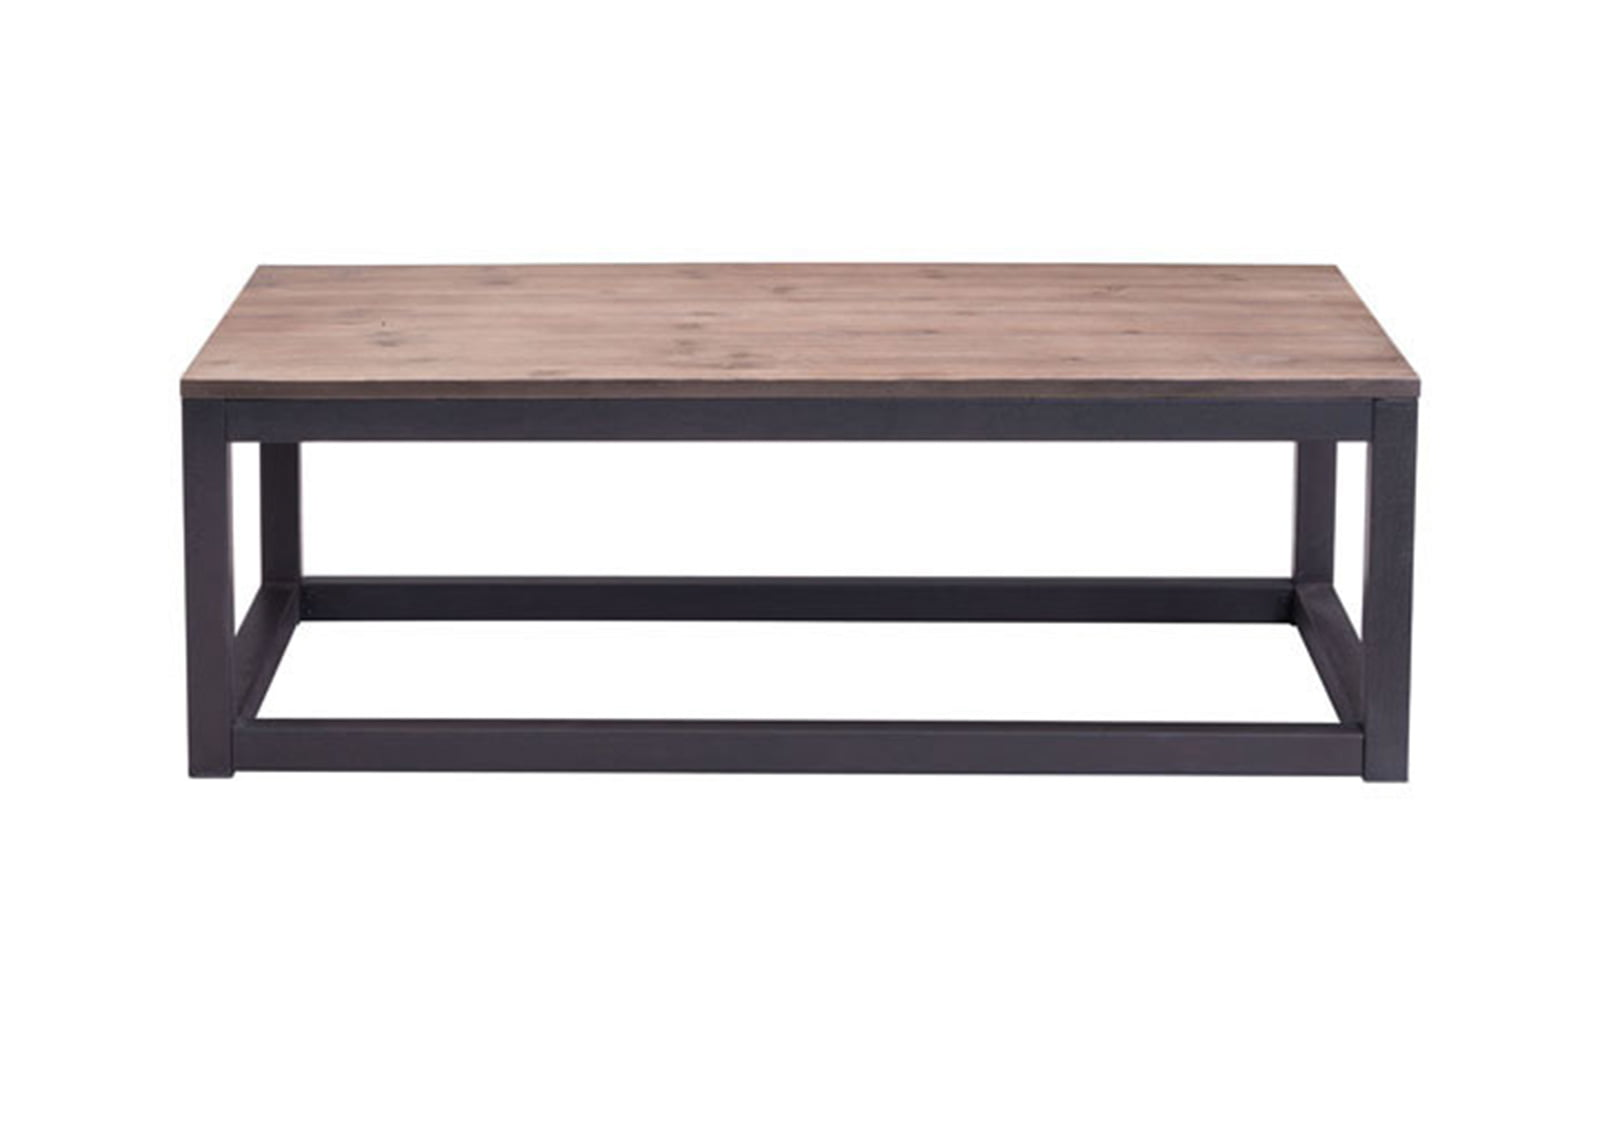 Civic Rectangular Coffee Table Distressed Natural Furnishplus